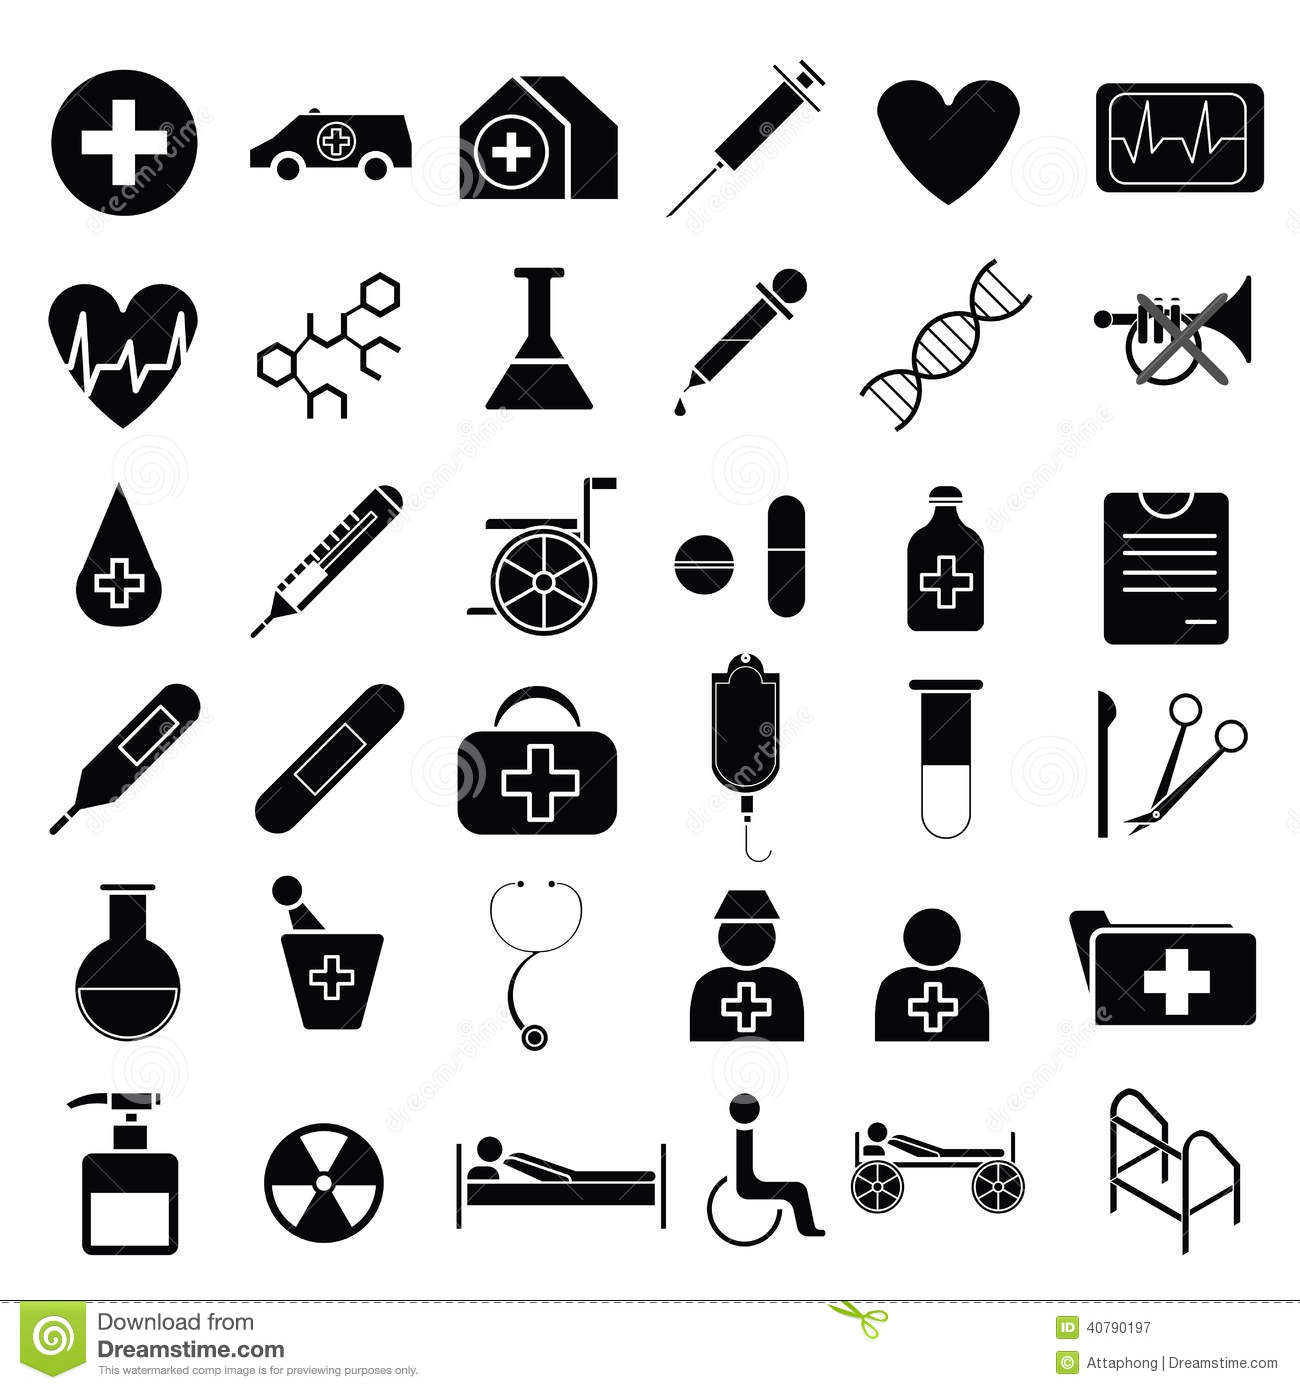 Medical Device Clipart